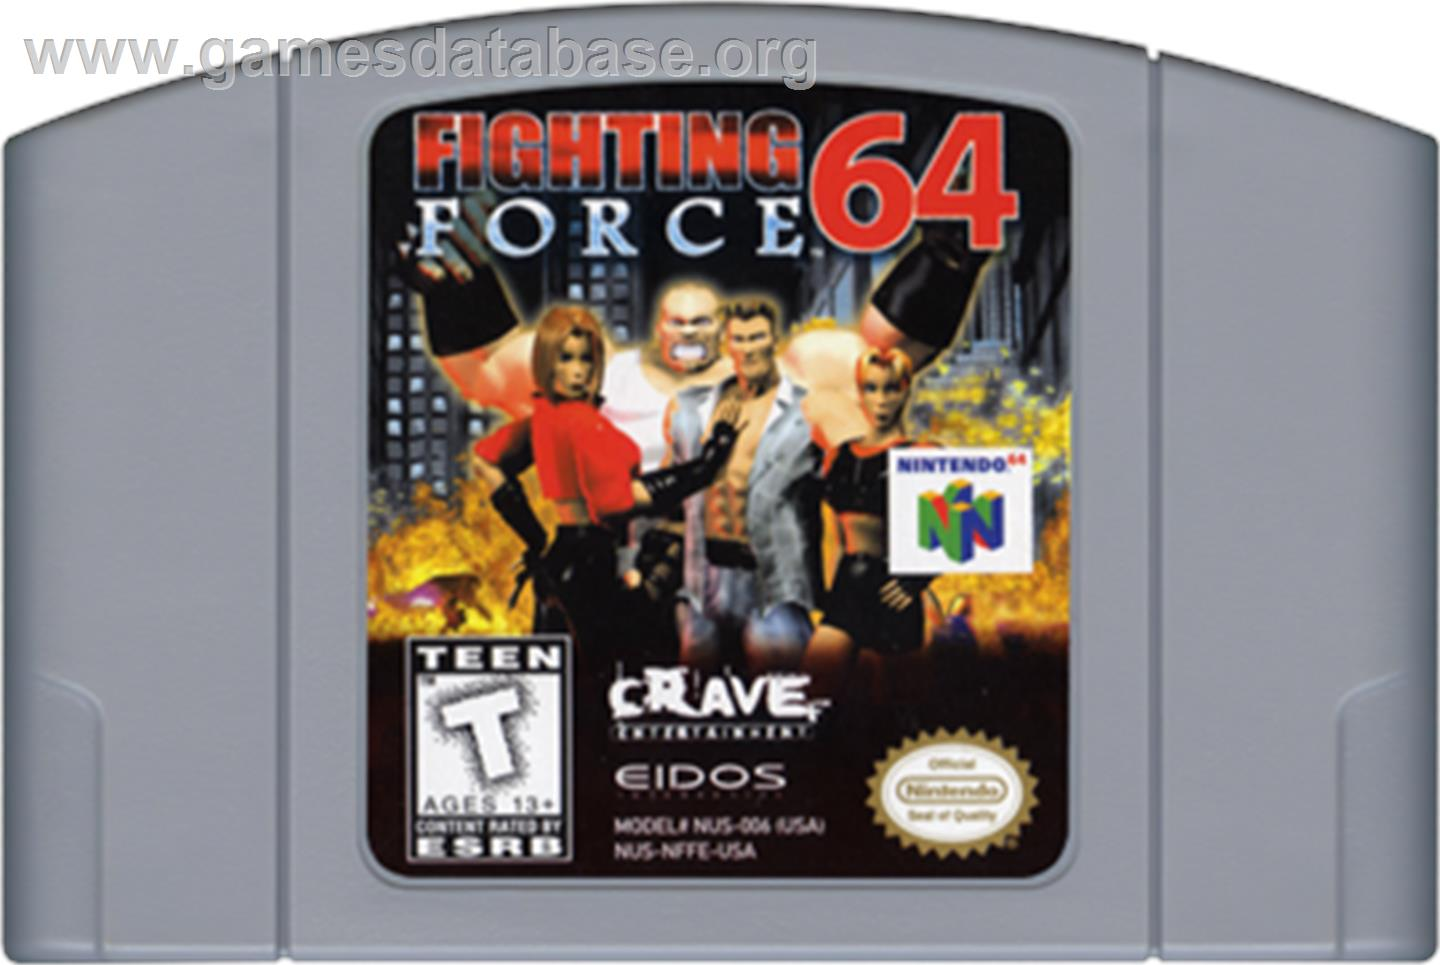 Fighting Force 64 - Nintendo N64 - Artwork - Cartridge